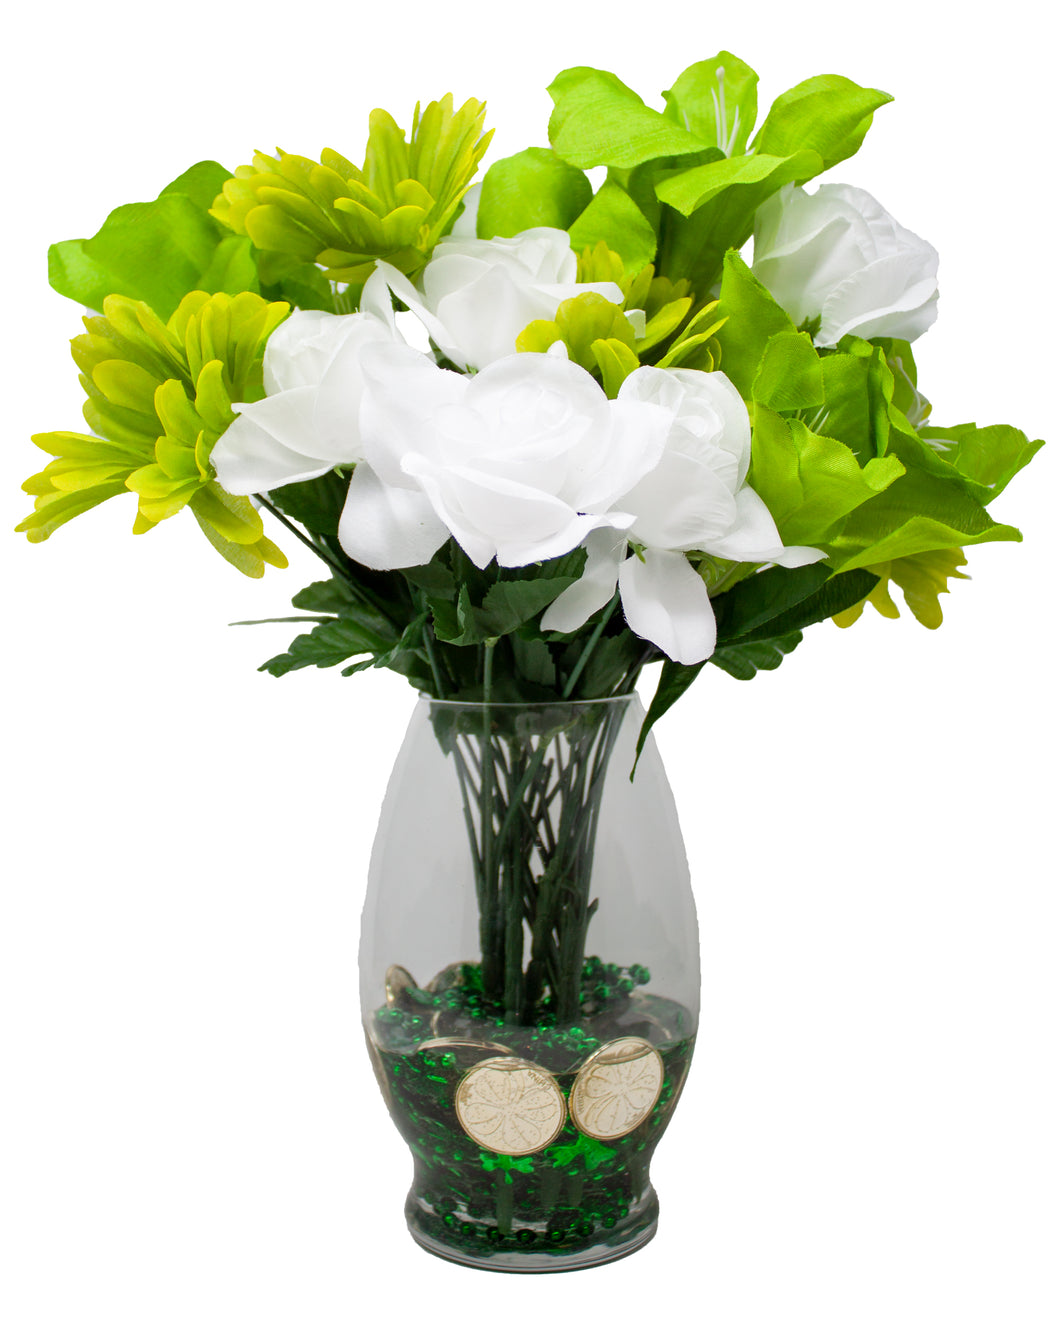 St Patrick's Day Faux Flower Bouquet | Home, Office Décor